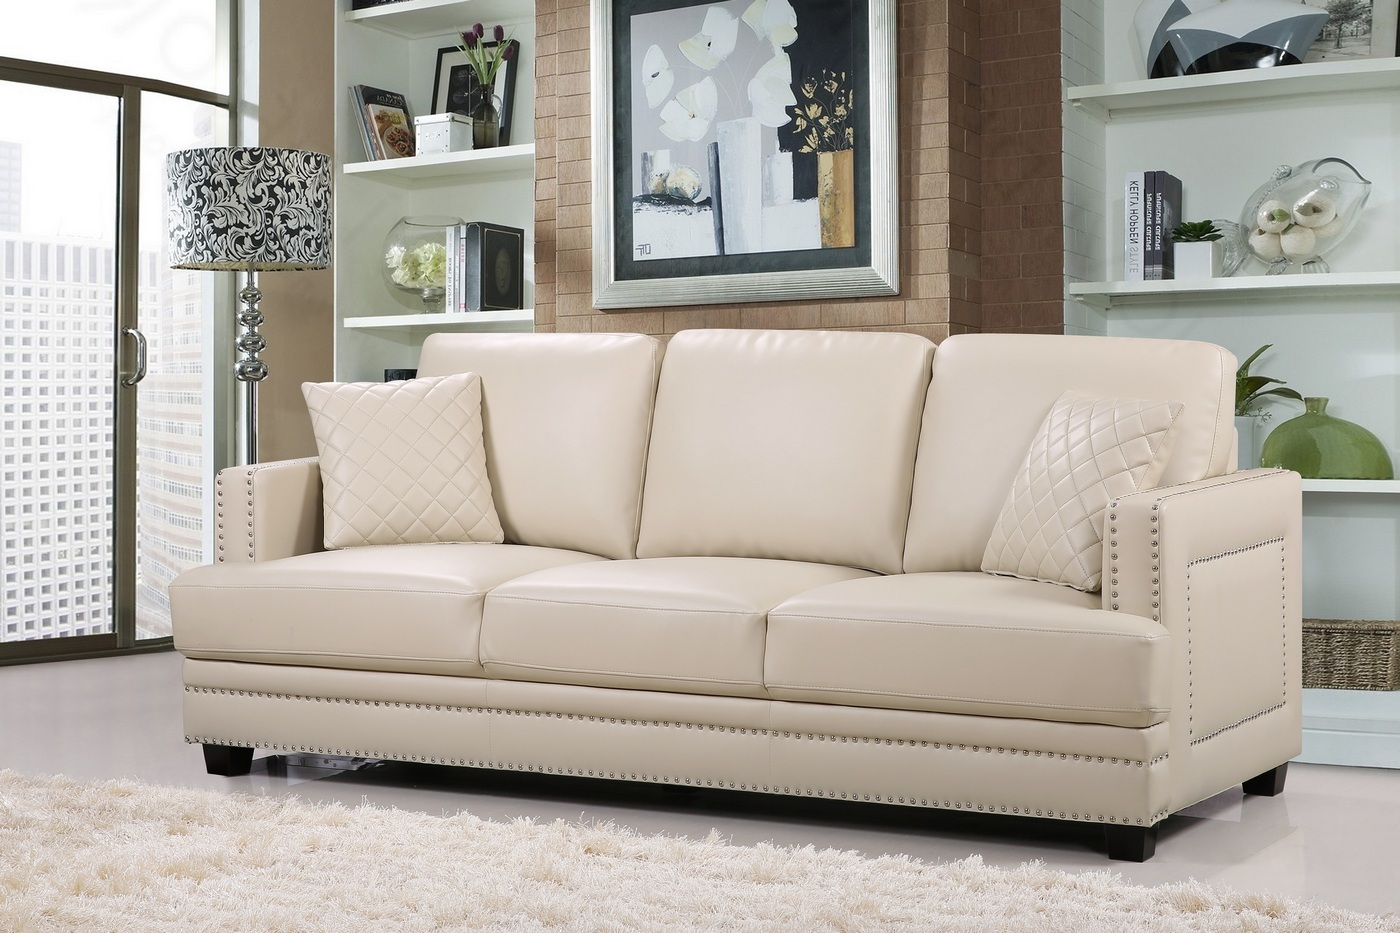 Beige Ledercouch Ferrara Opulent Beige Leather Sofa With Silver Nail Head